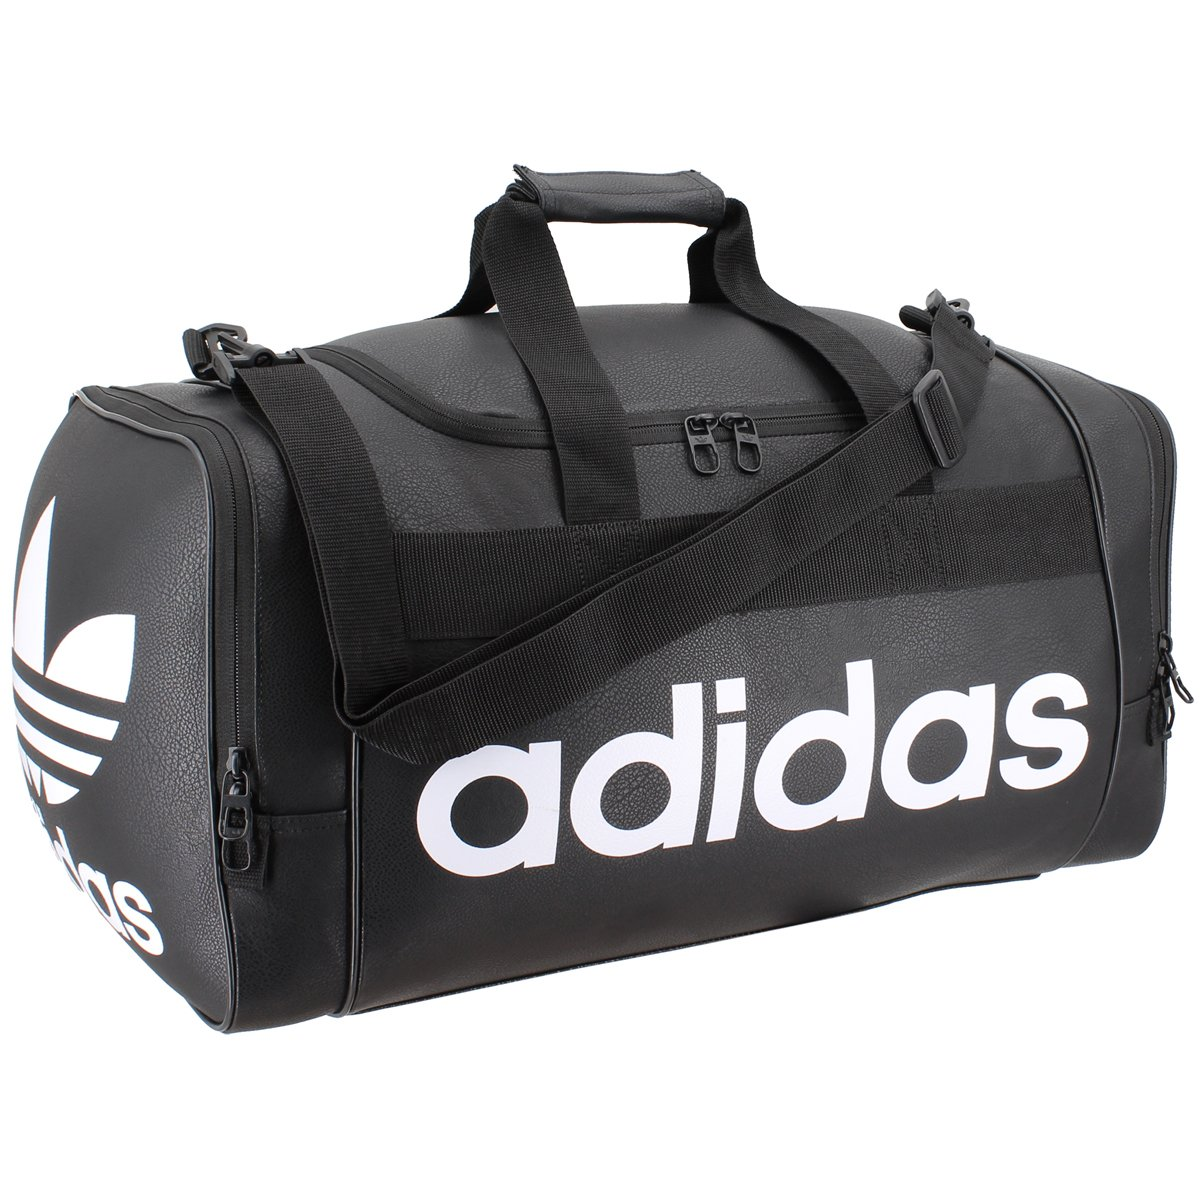 adidas Originals Santiago Duffel Bag, Black/Chalk White, One Size